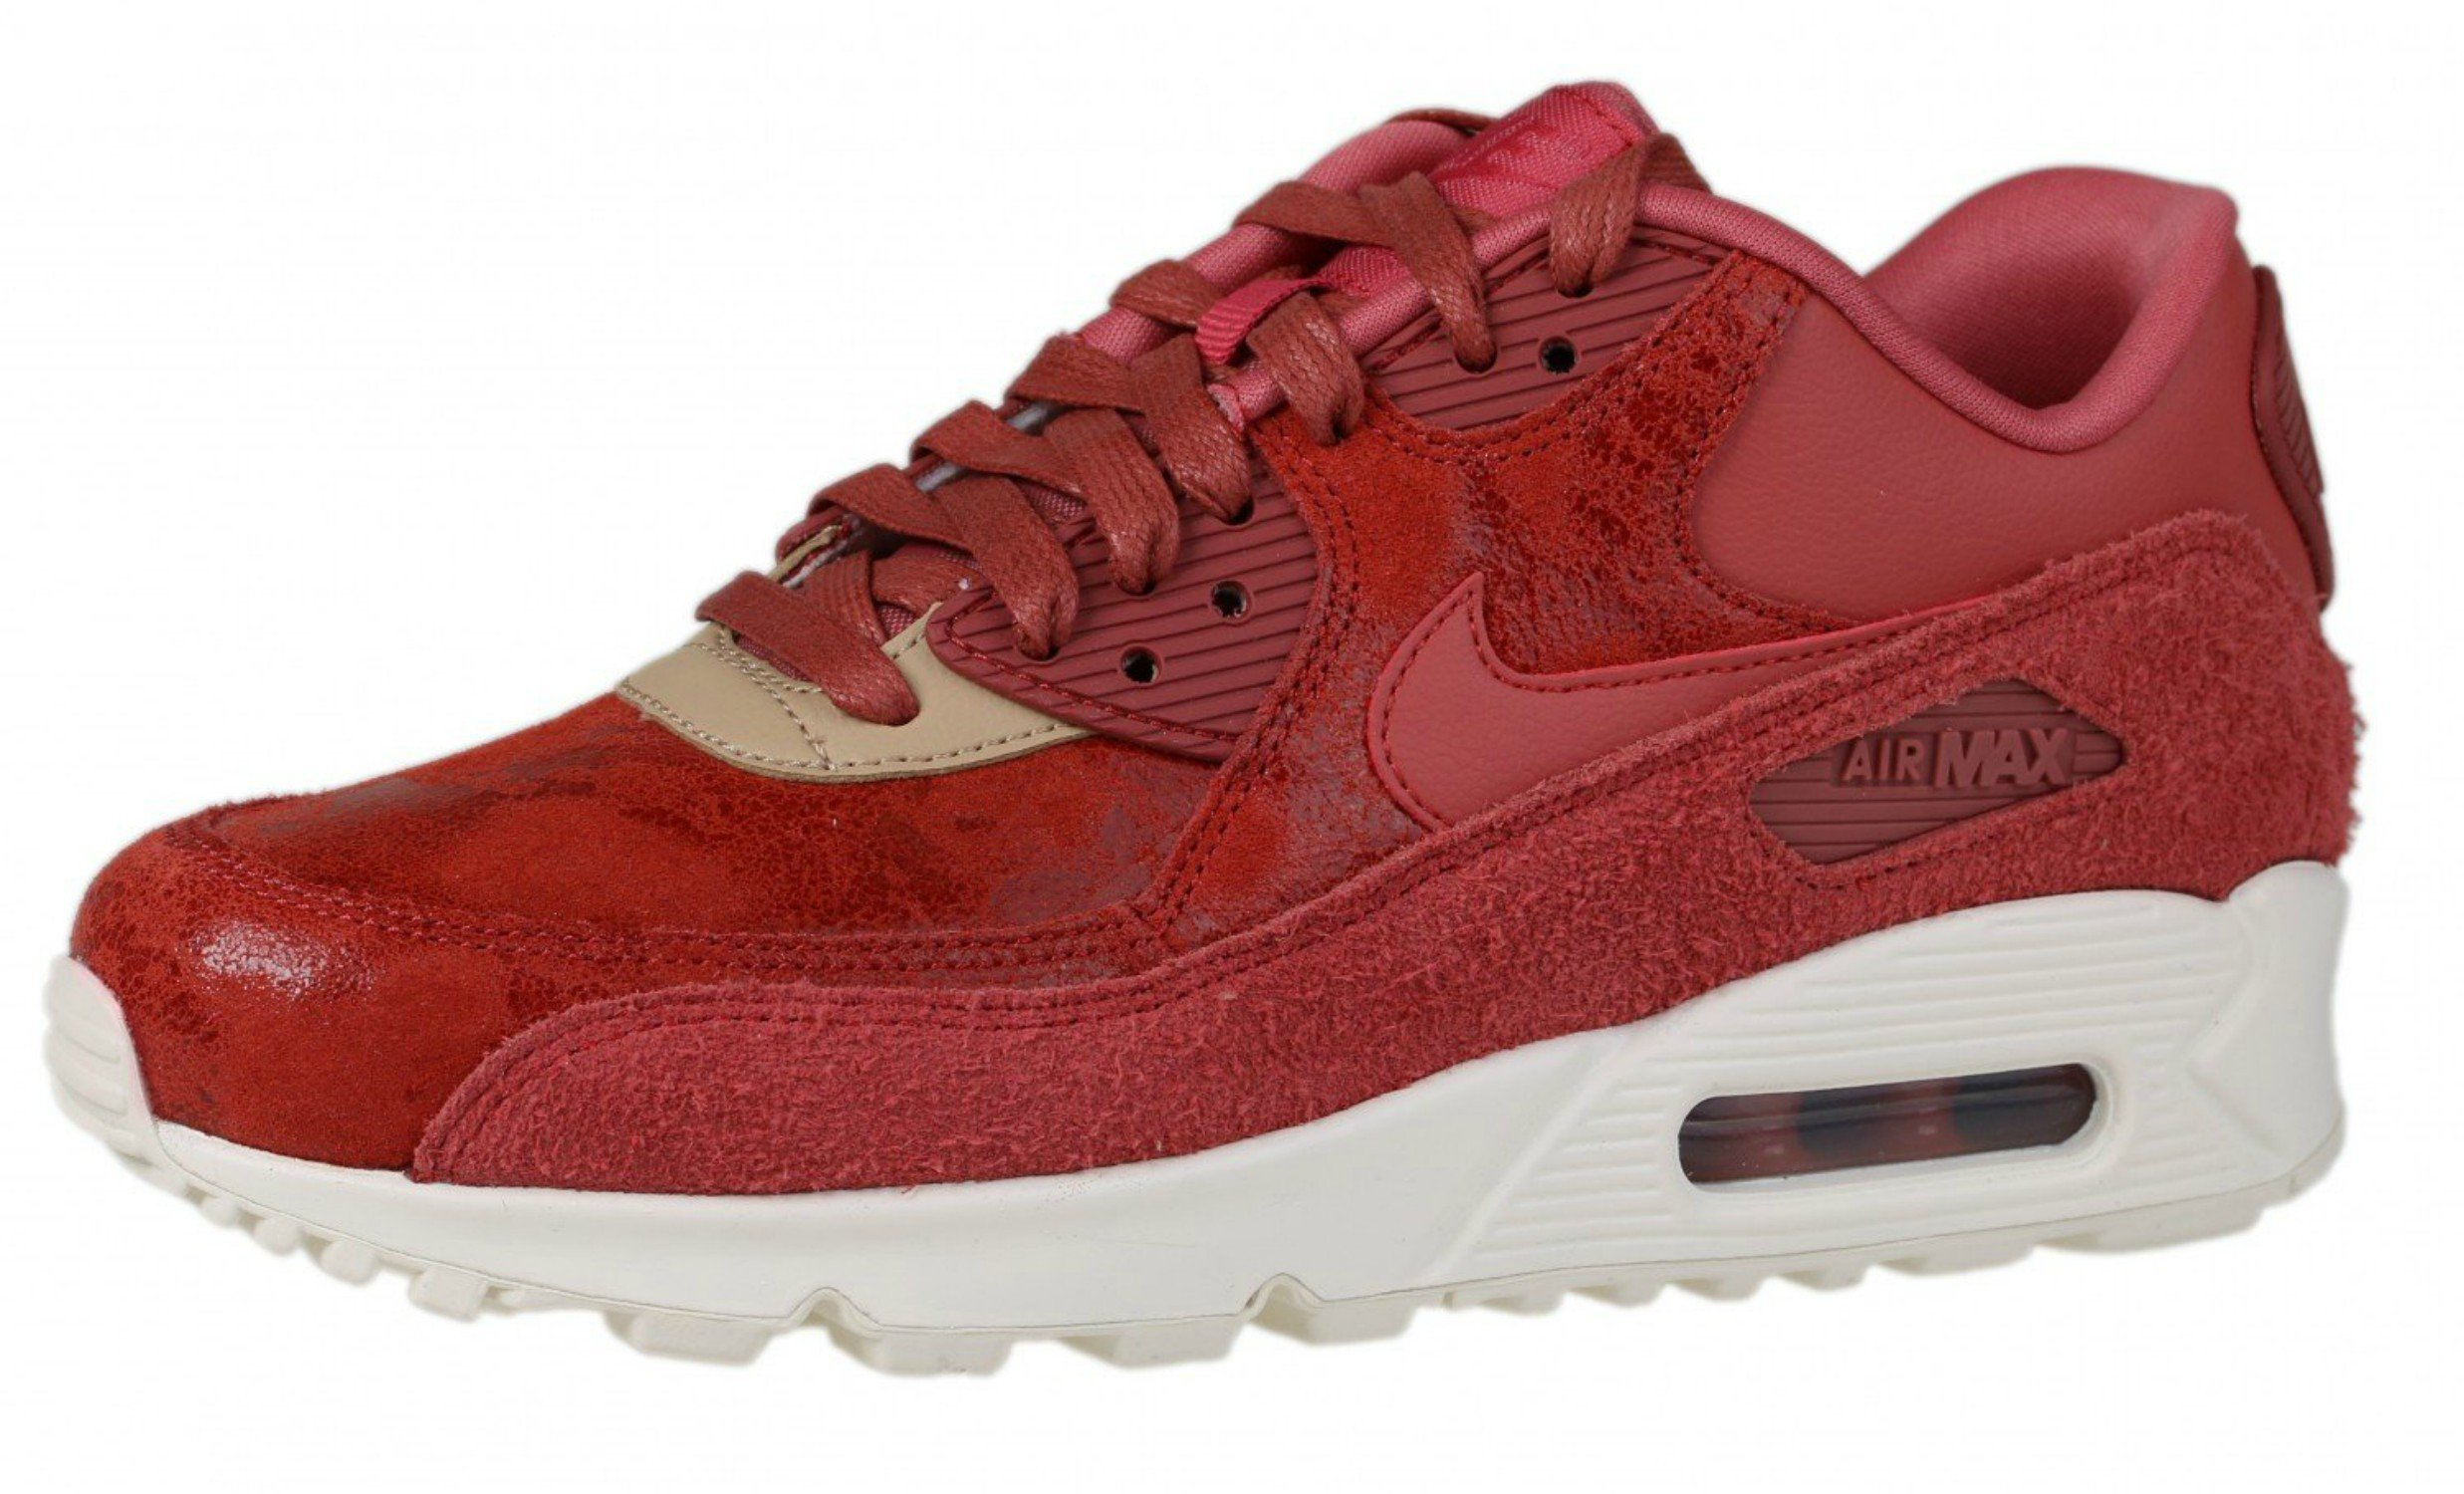 Trainers Nike Womens Air Max 90 SD Light Redwood Trainers